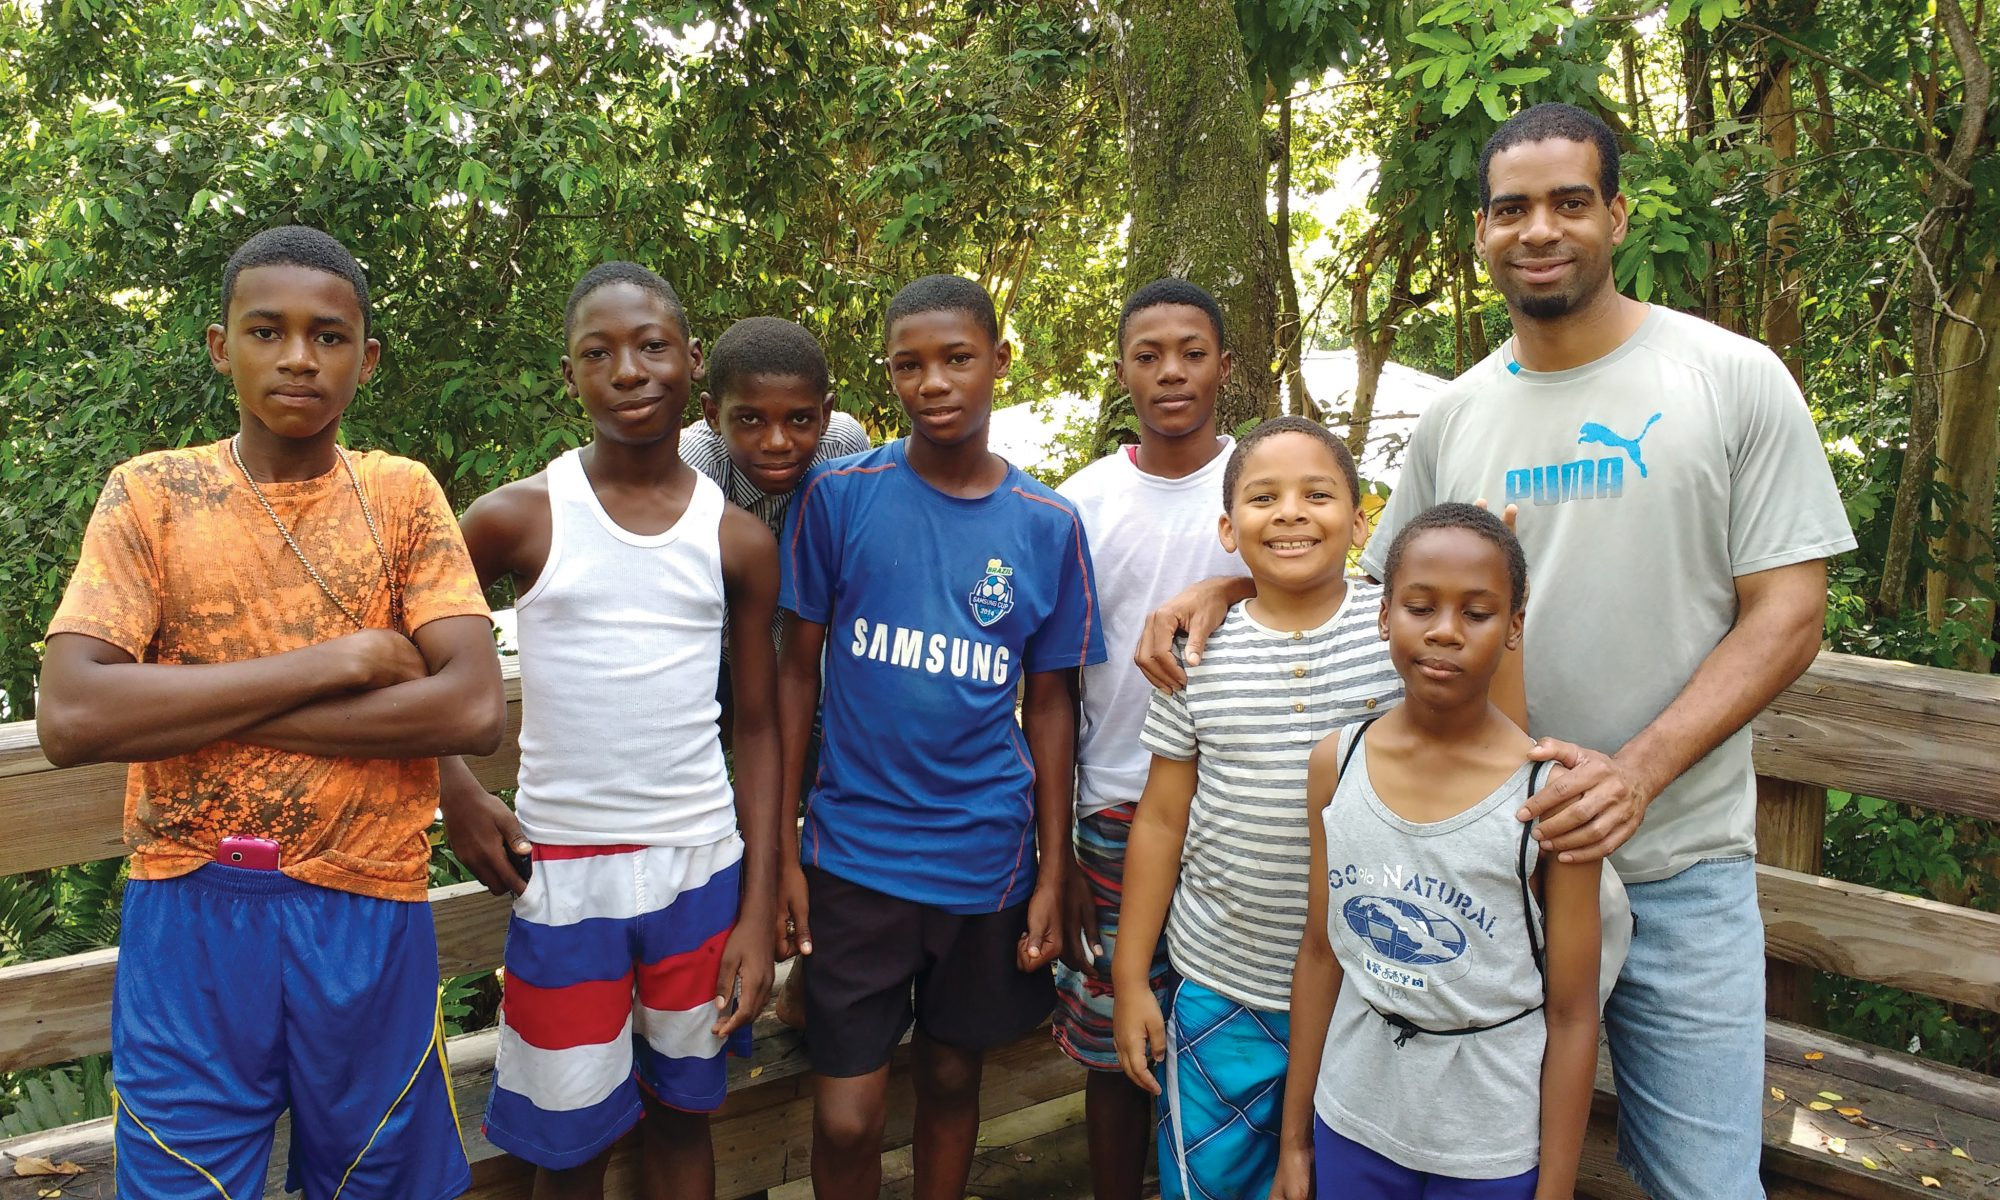 In Jamaica, A Campout for Boys and Men